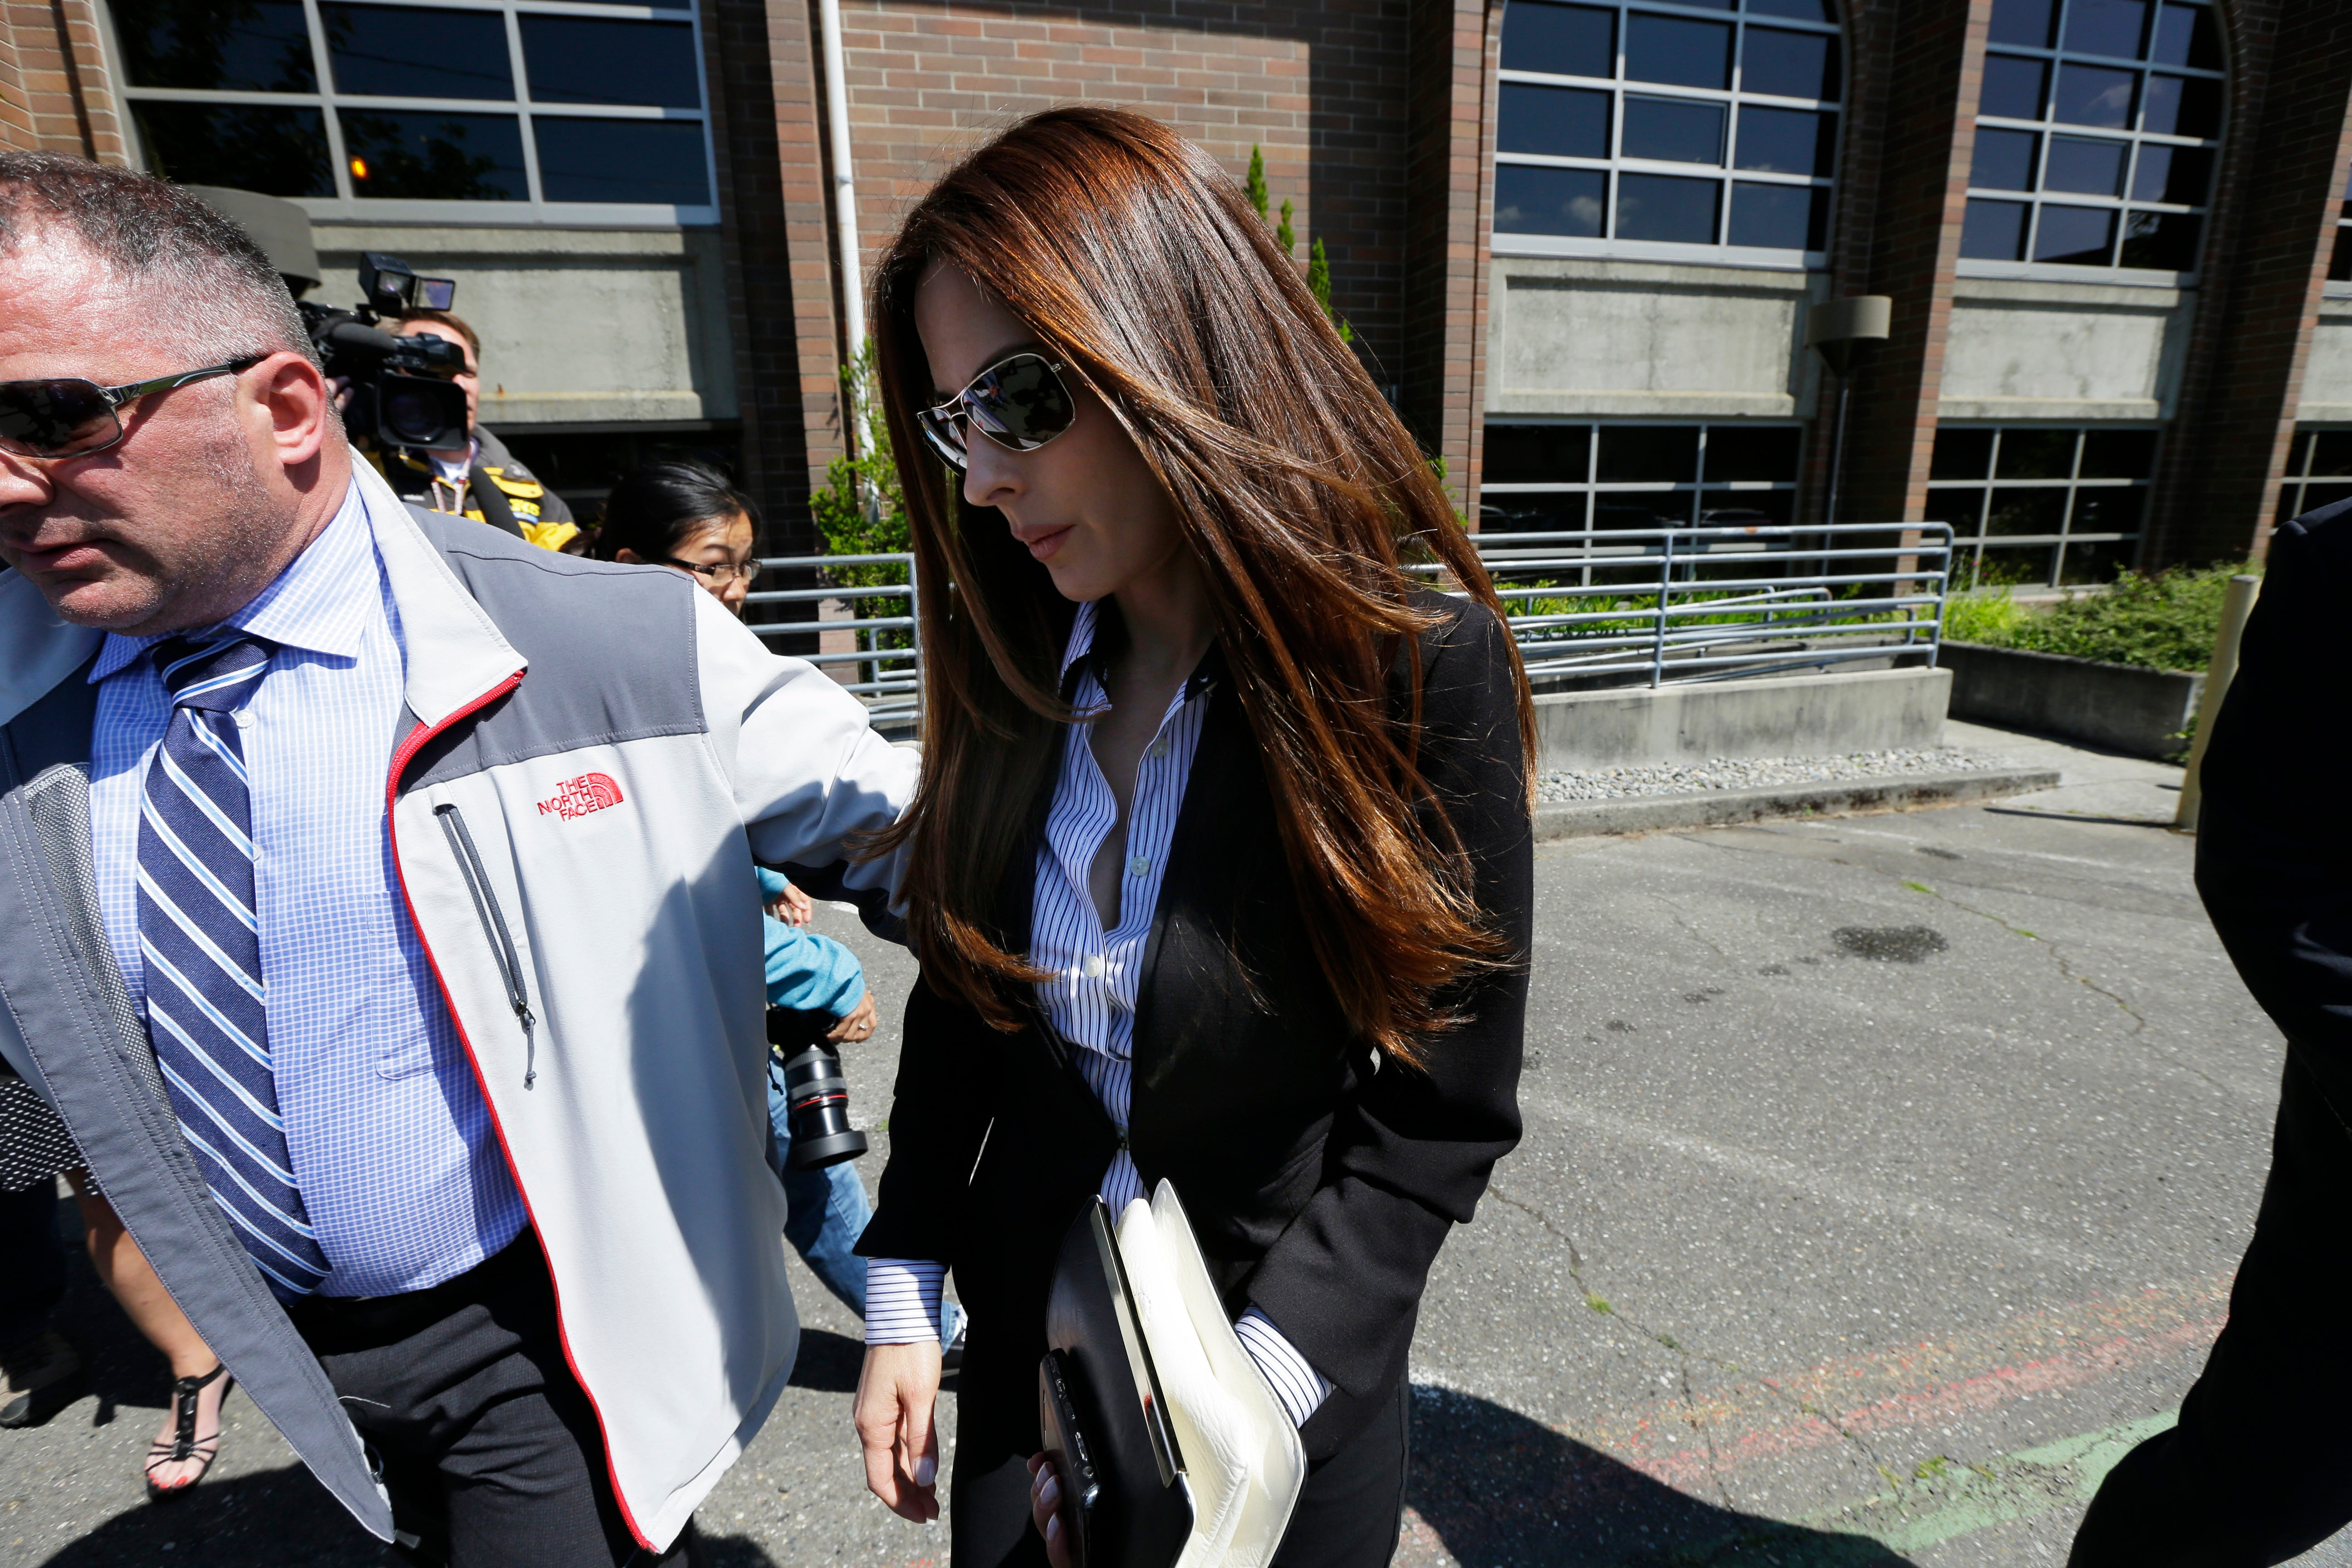 Kerri Kasem, the daughter of radio personality Casey Kasem, leaves the Kitsap County Courthouse in Port Orchard, Wash., on Friday, May 30, 2014.